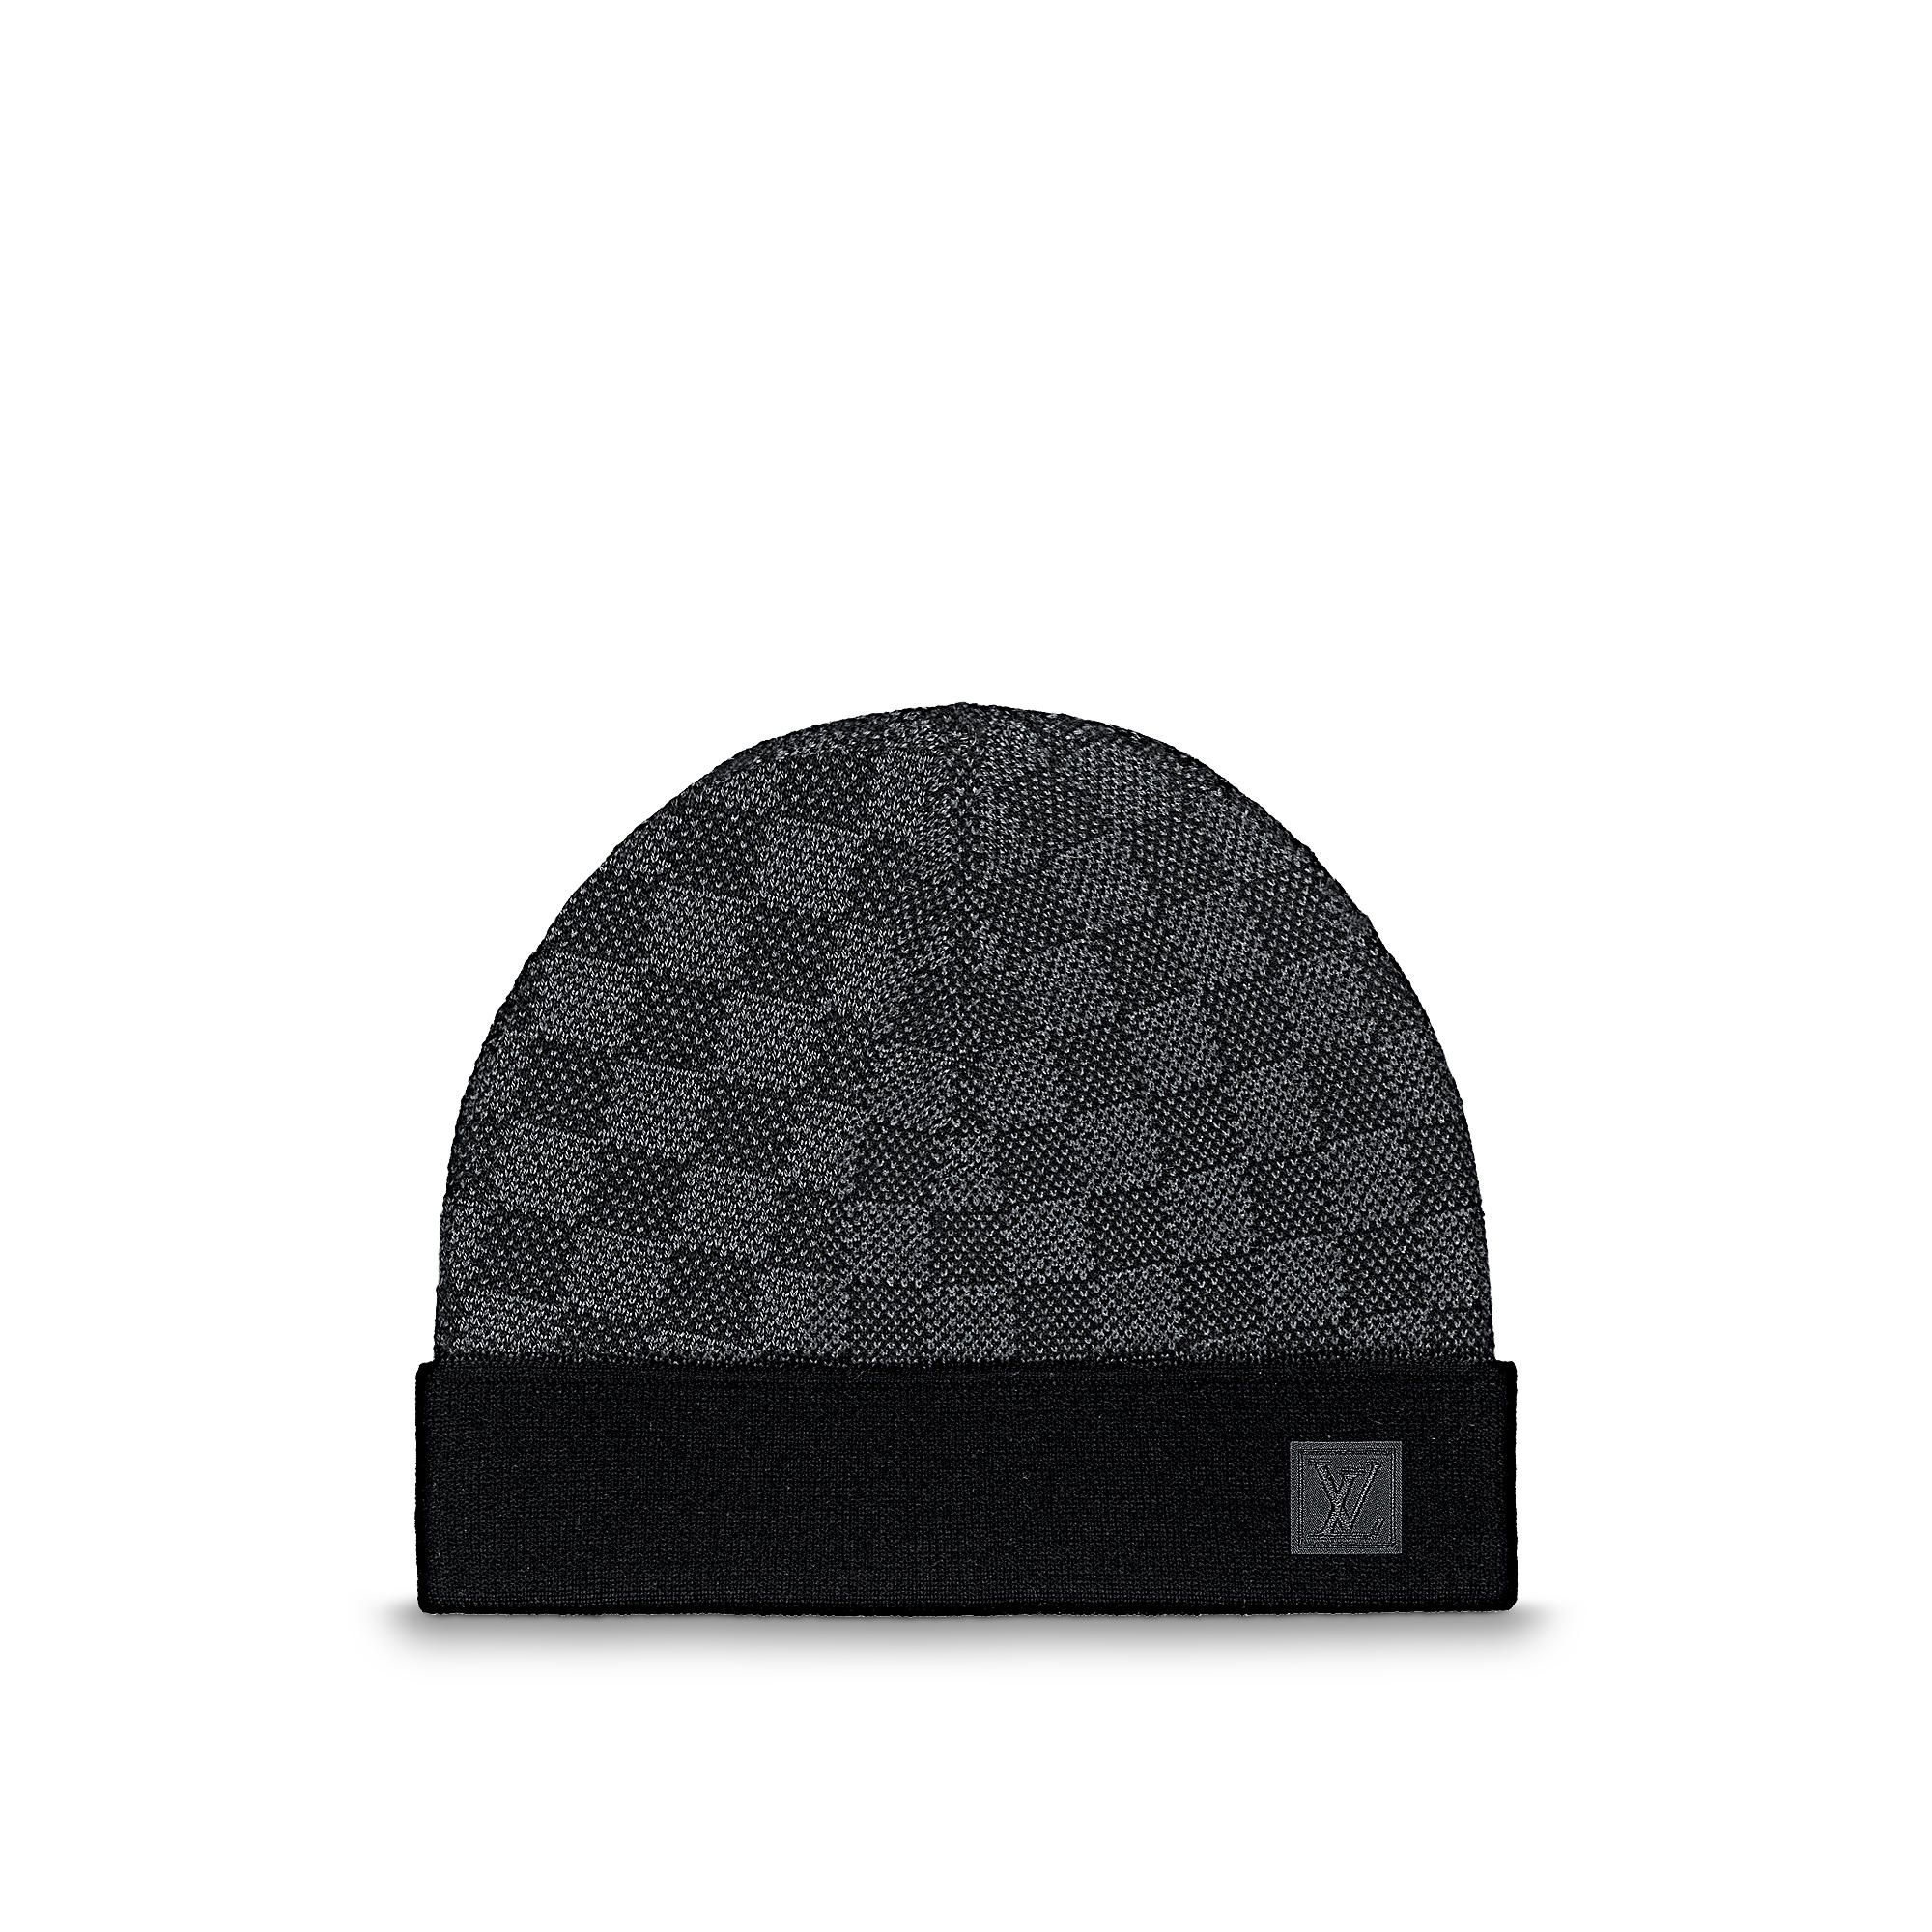 Descubra el Louis Vuitton Gorro NM Petit Damier a través de Louis Vuitton 125eff219c5